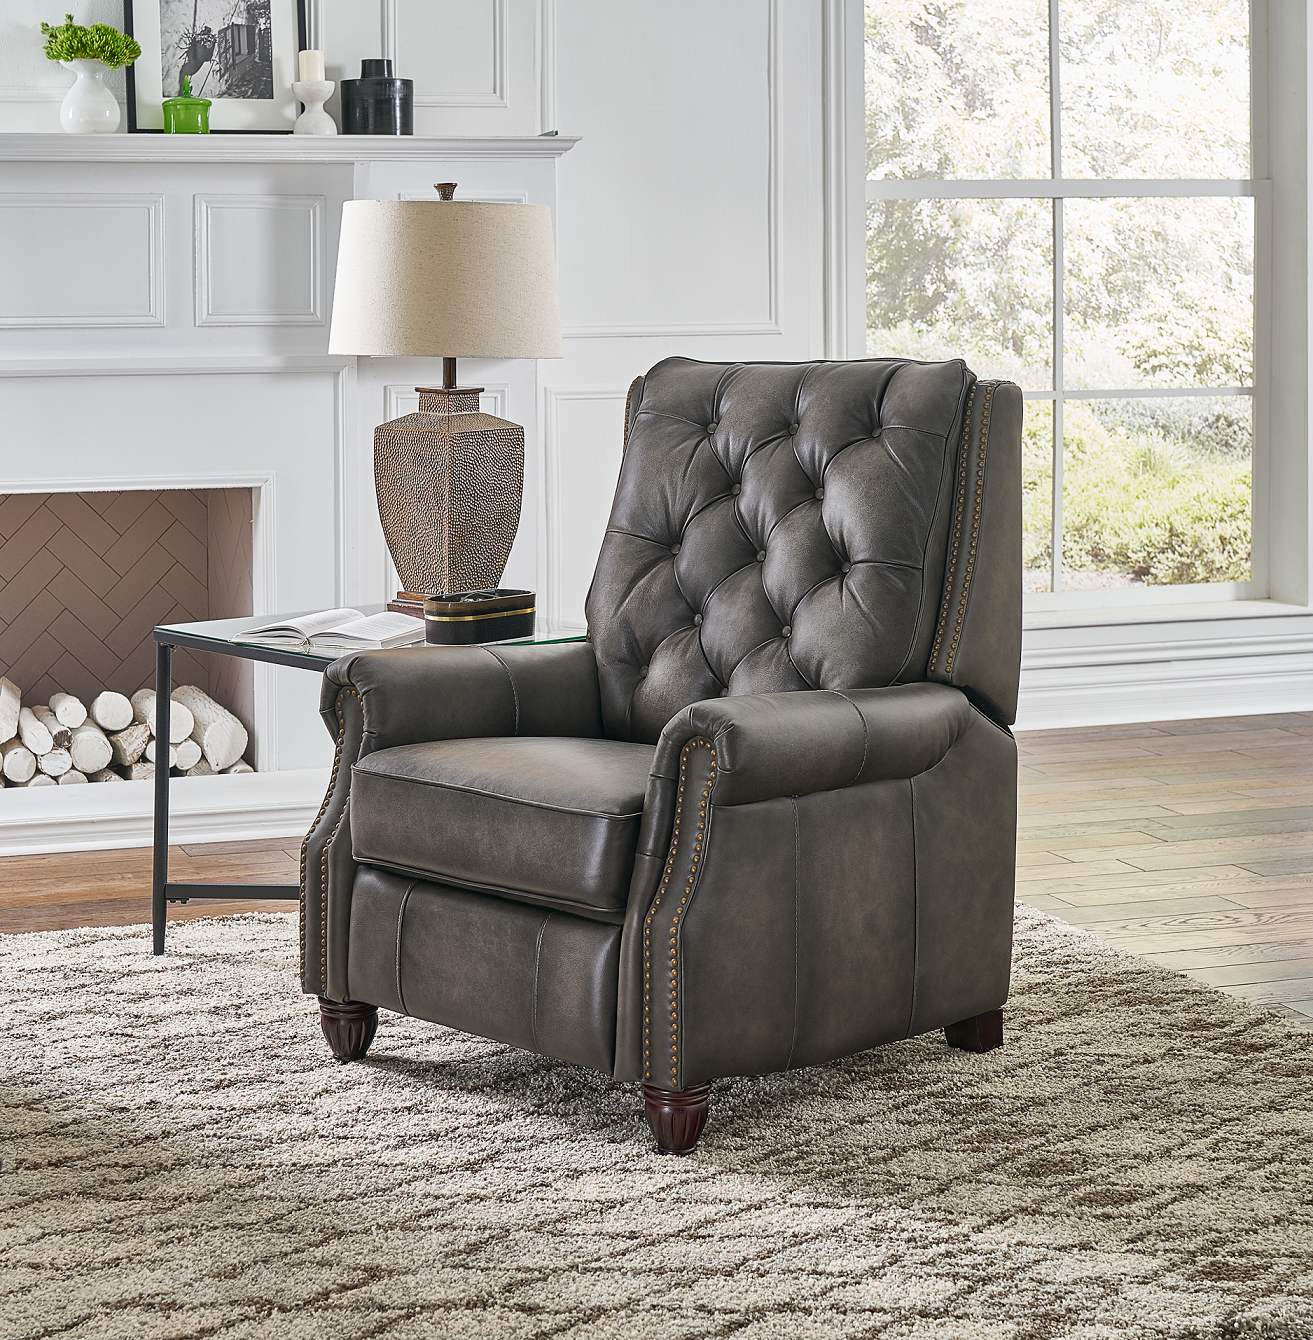 Luxurious Leather Recliner, Gray Recliner chair, Leather